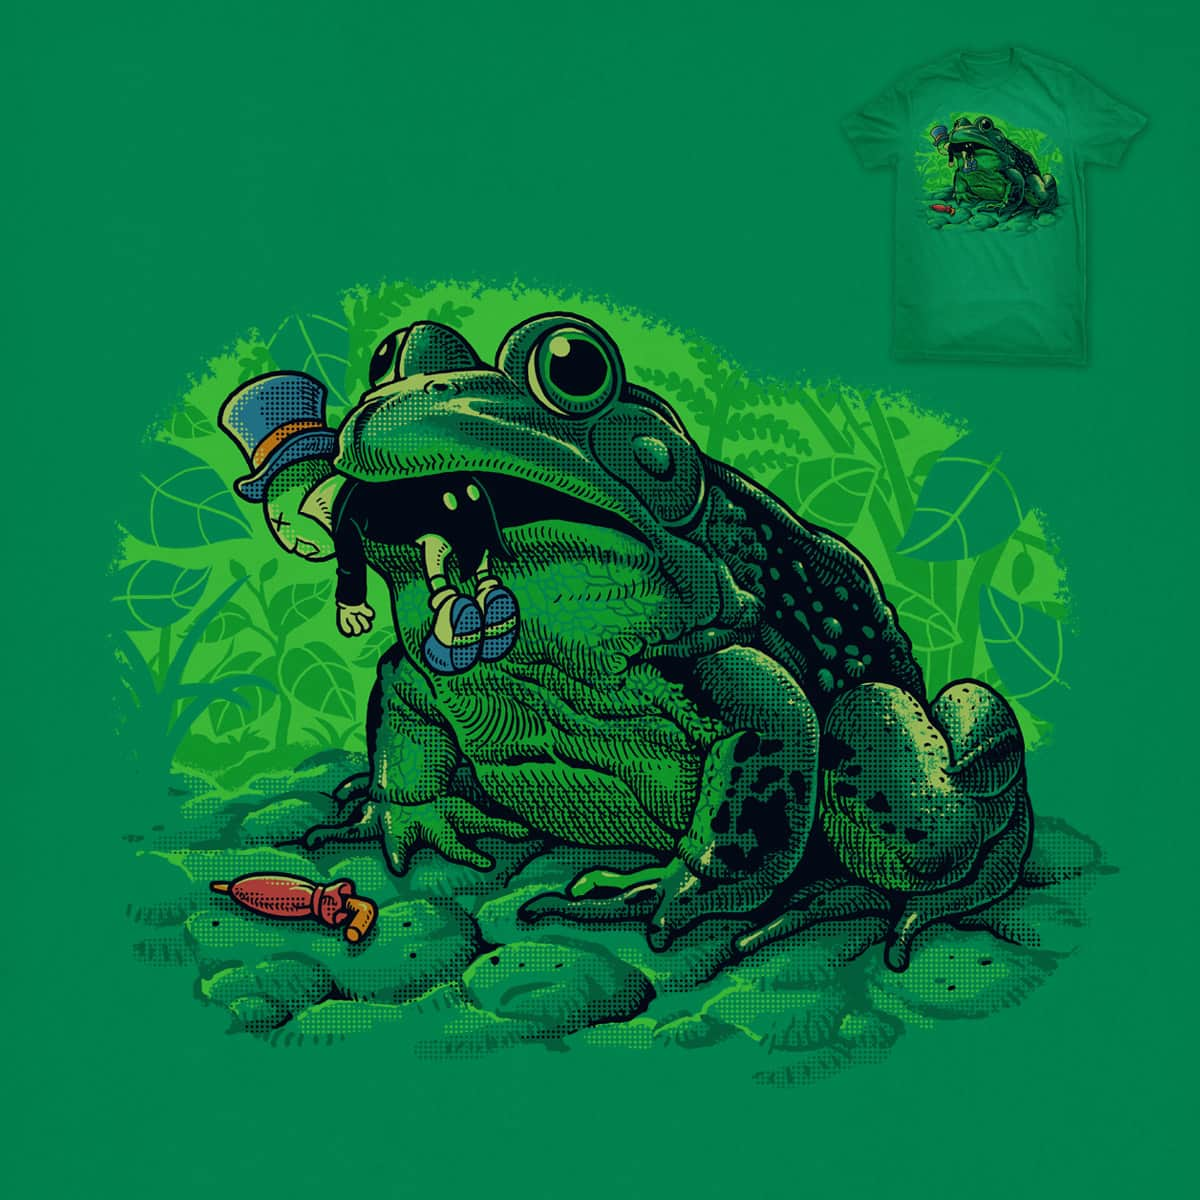 Frog Food by ben chen on Threadless